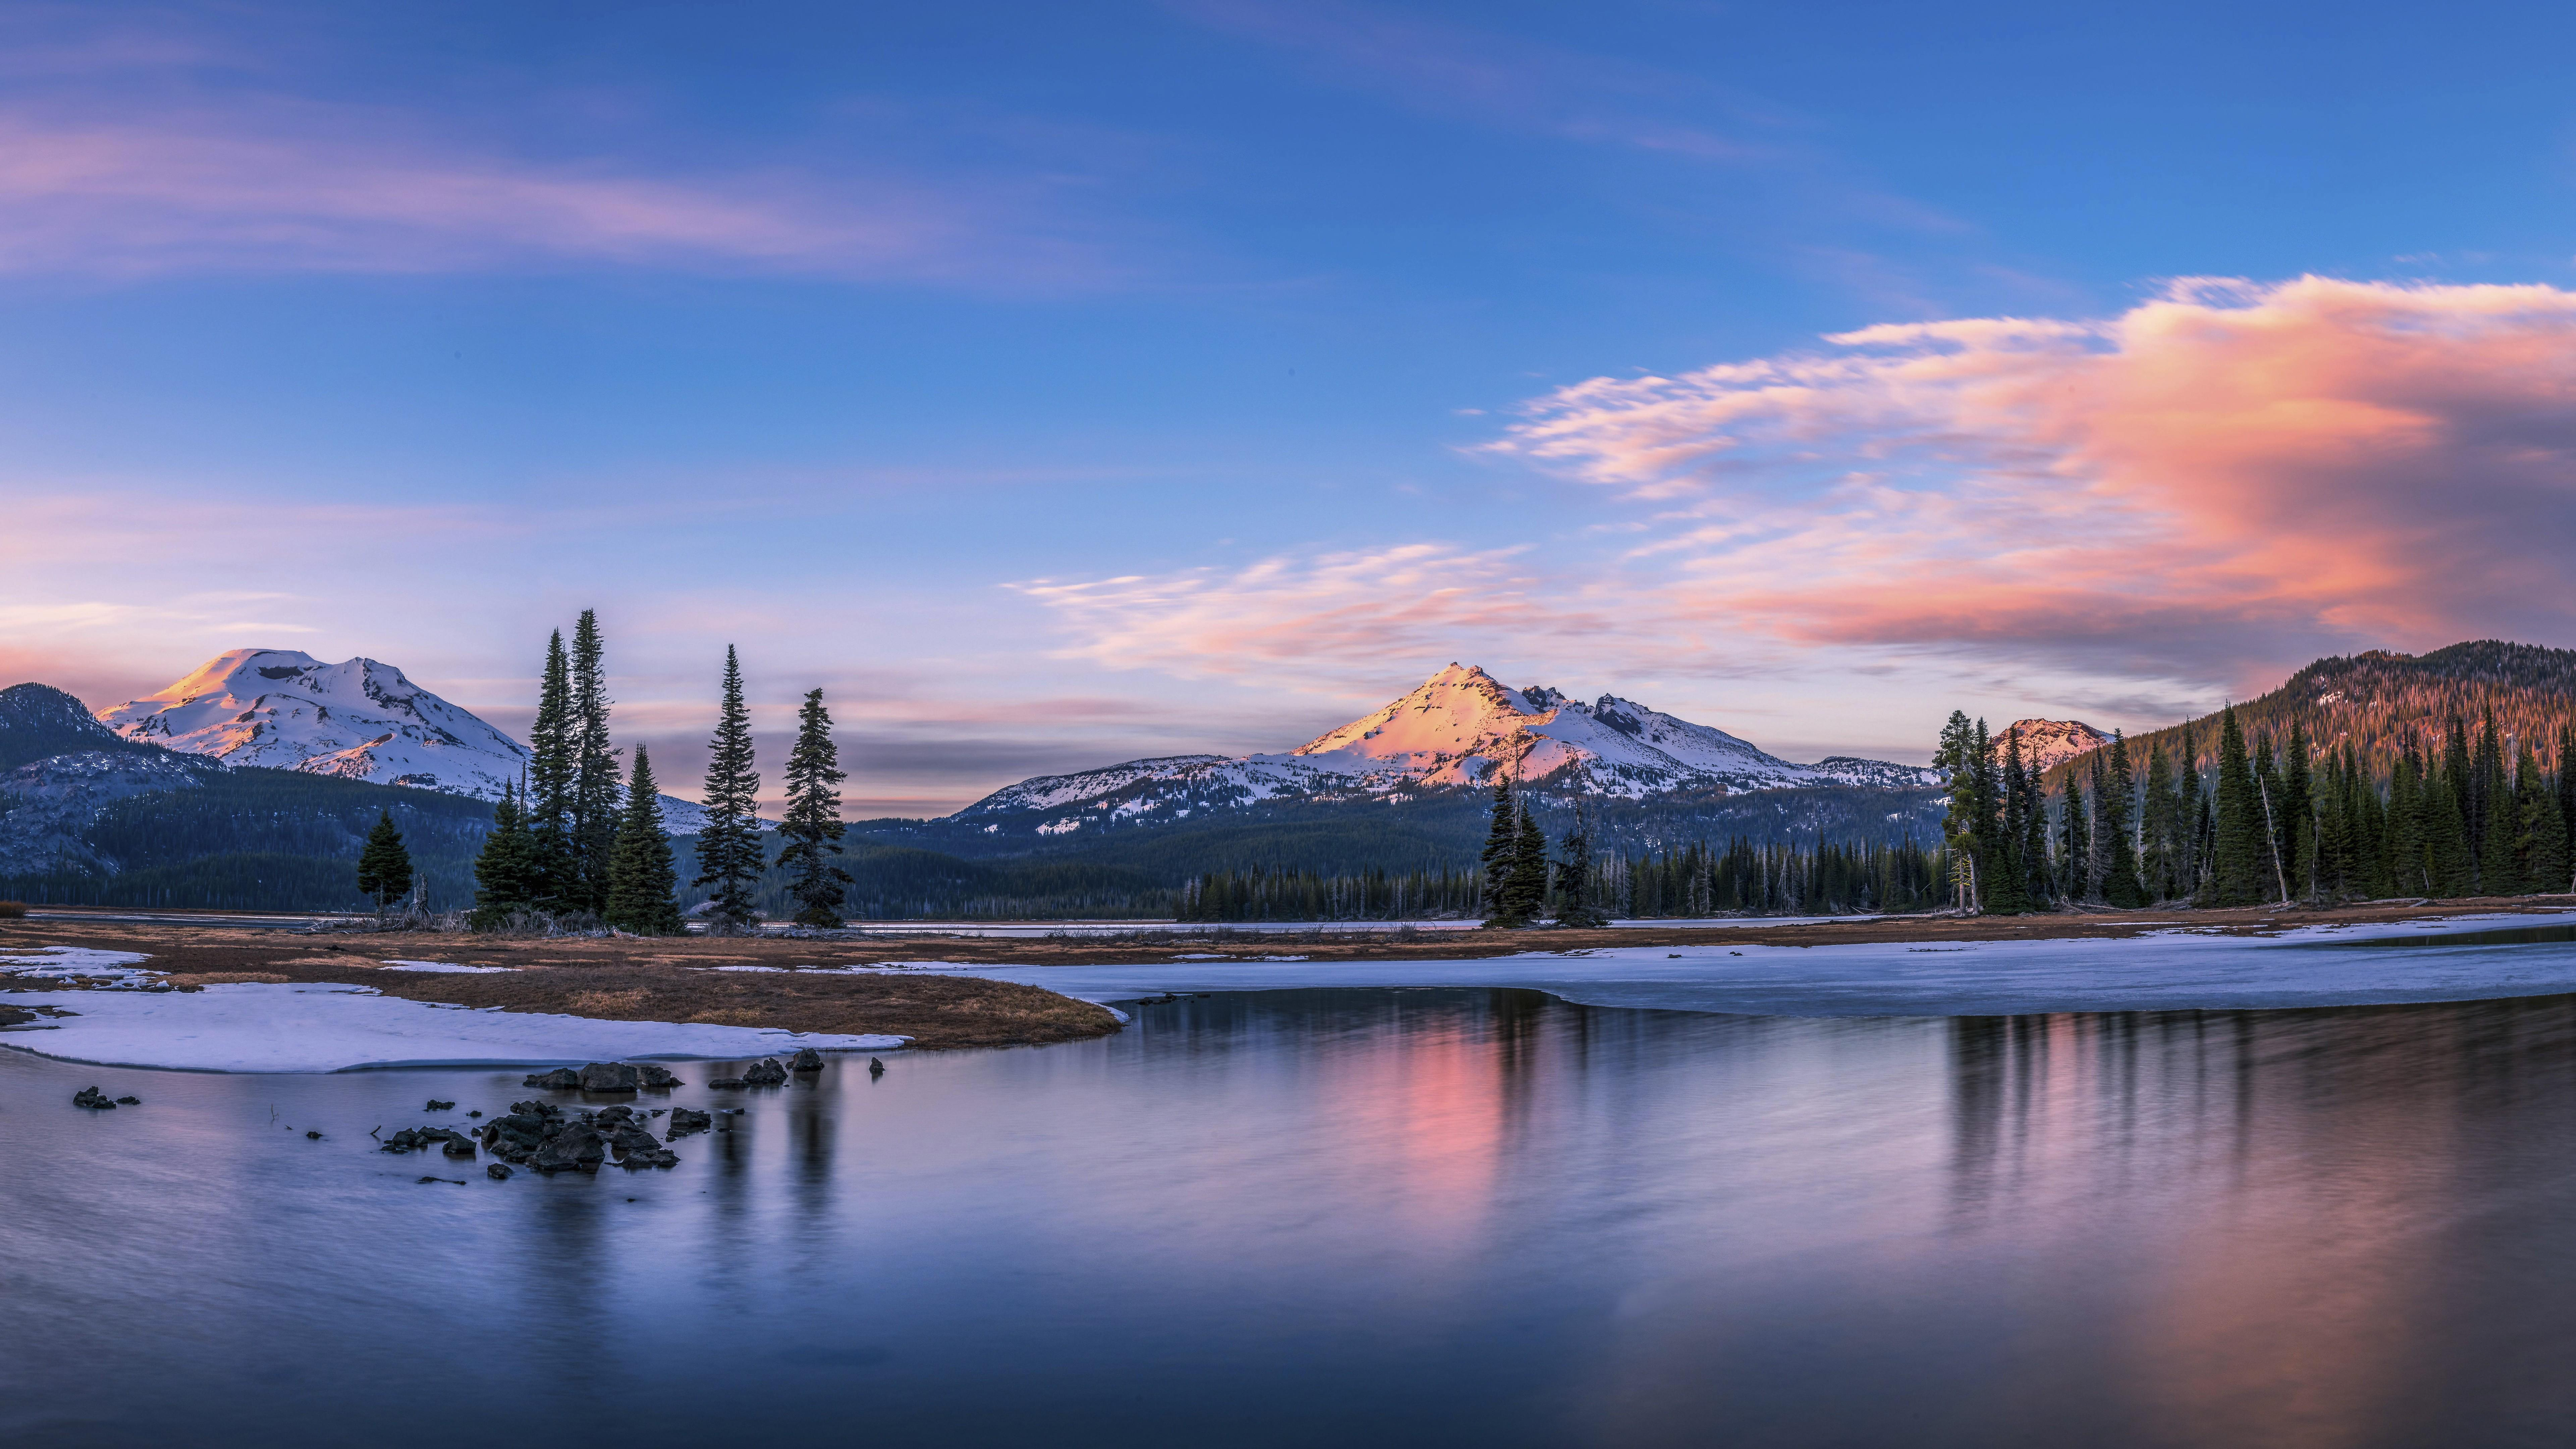 Wallpapers Sparks Lake, 5k, 4k wallpaper, 8k, Oregon, USA, mountains